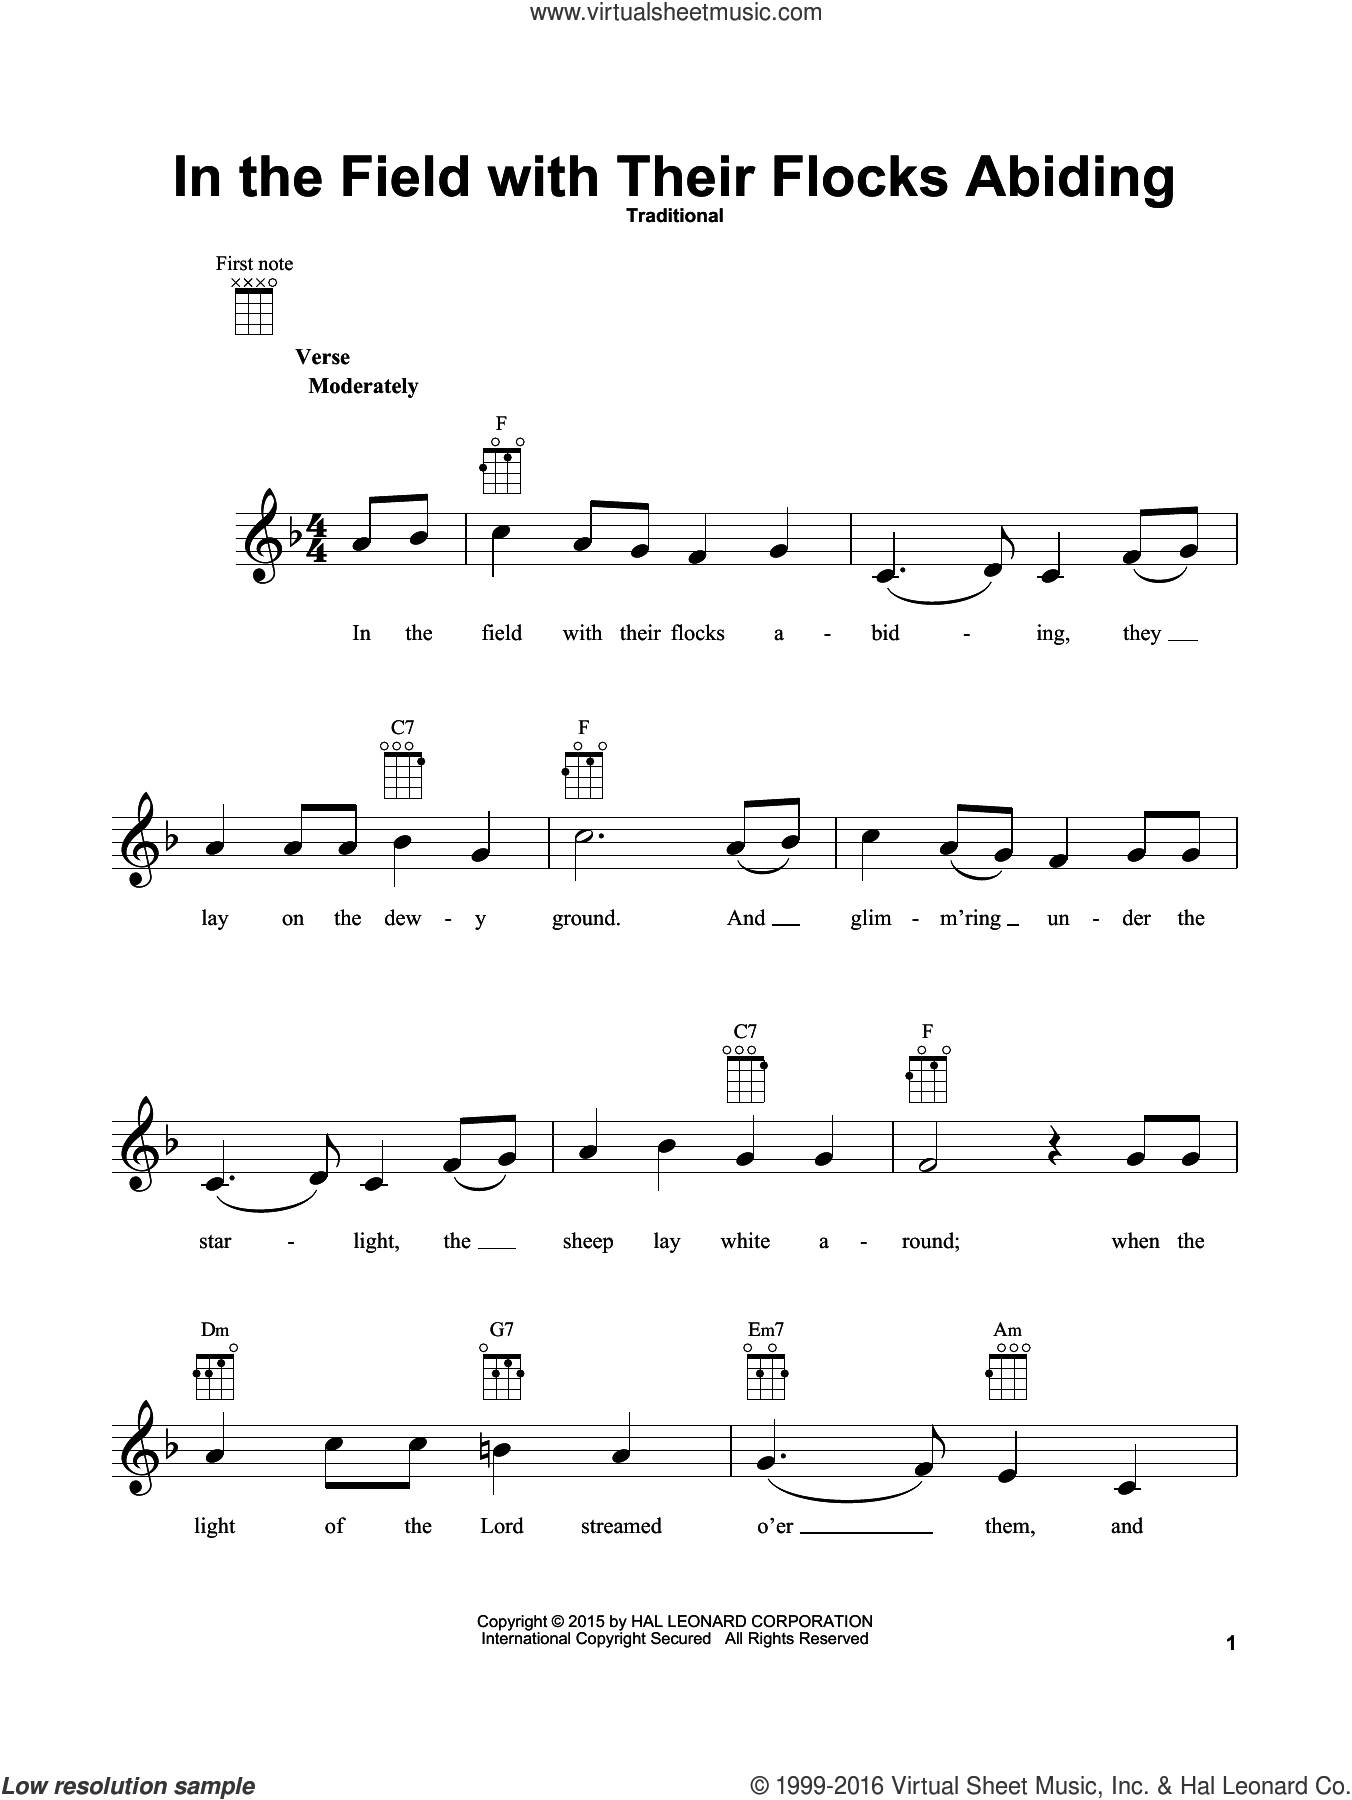 In The Field With Their Flocks Abiding sheet music for ukulele, Christmas carol score, intermediate ukulele. Score Image Preview.